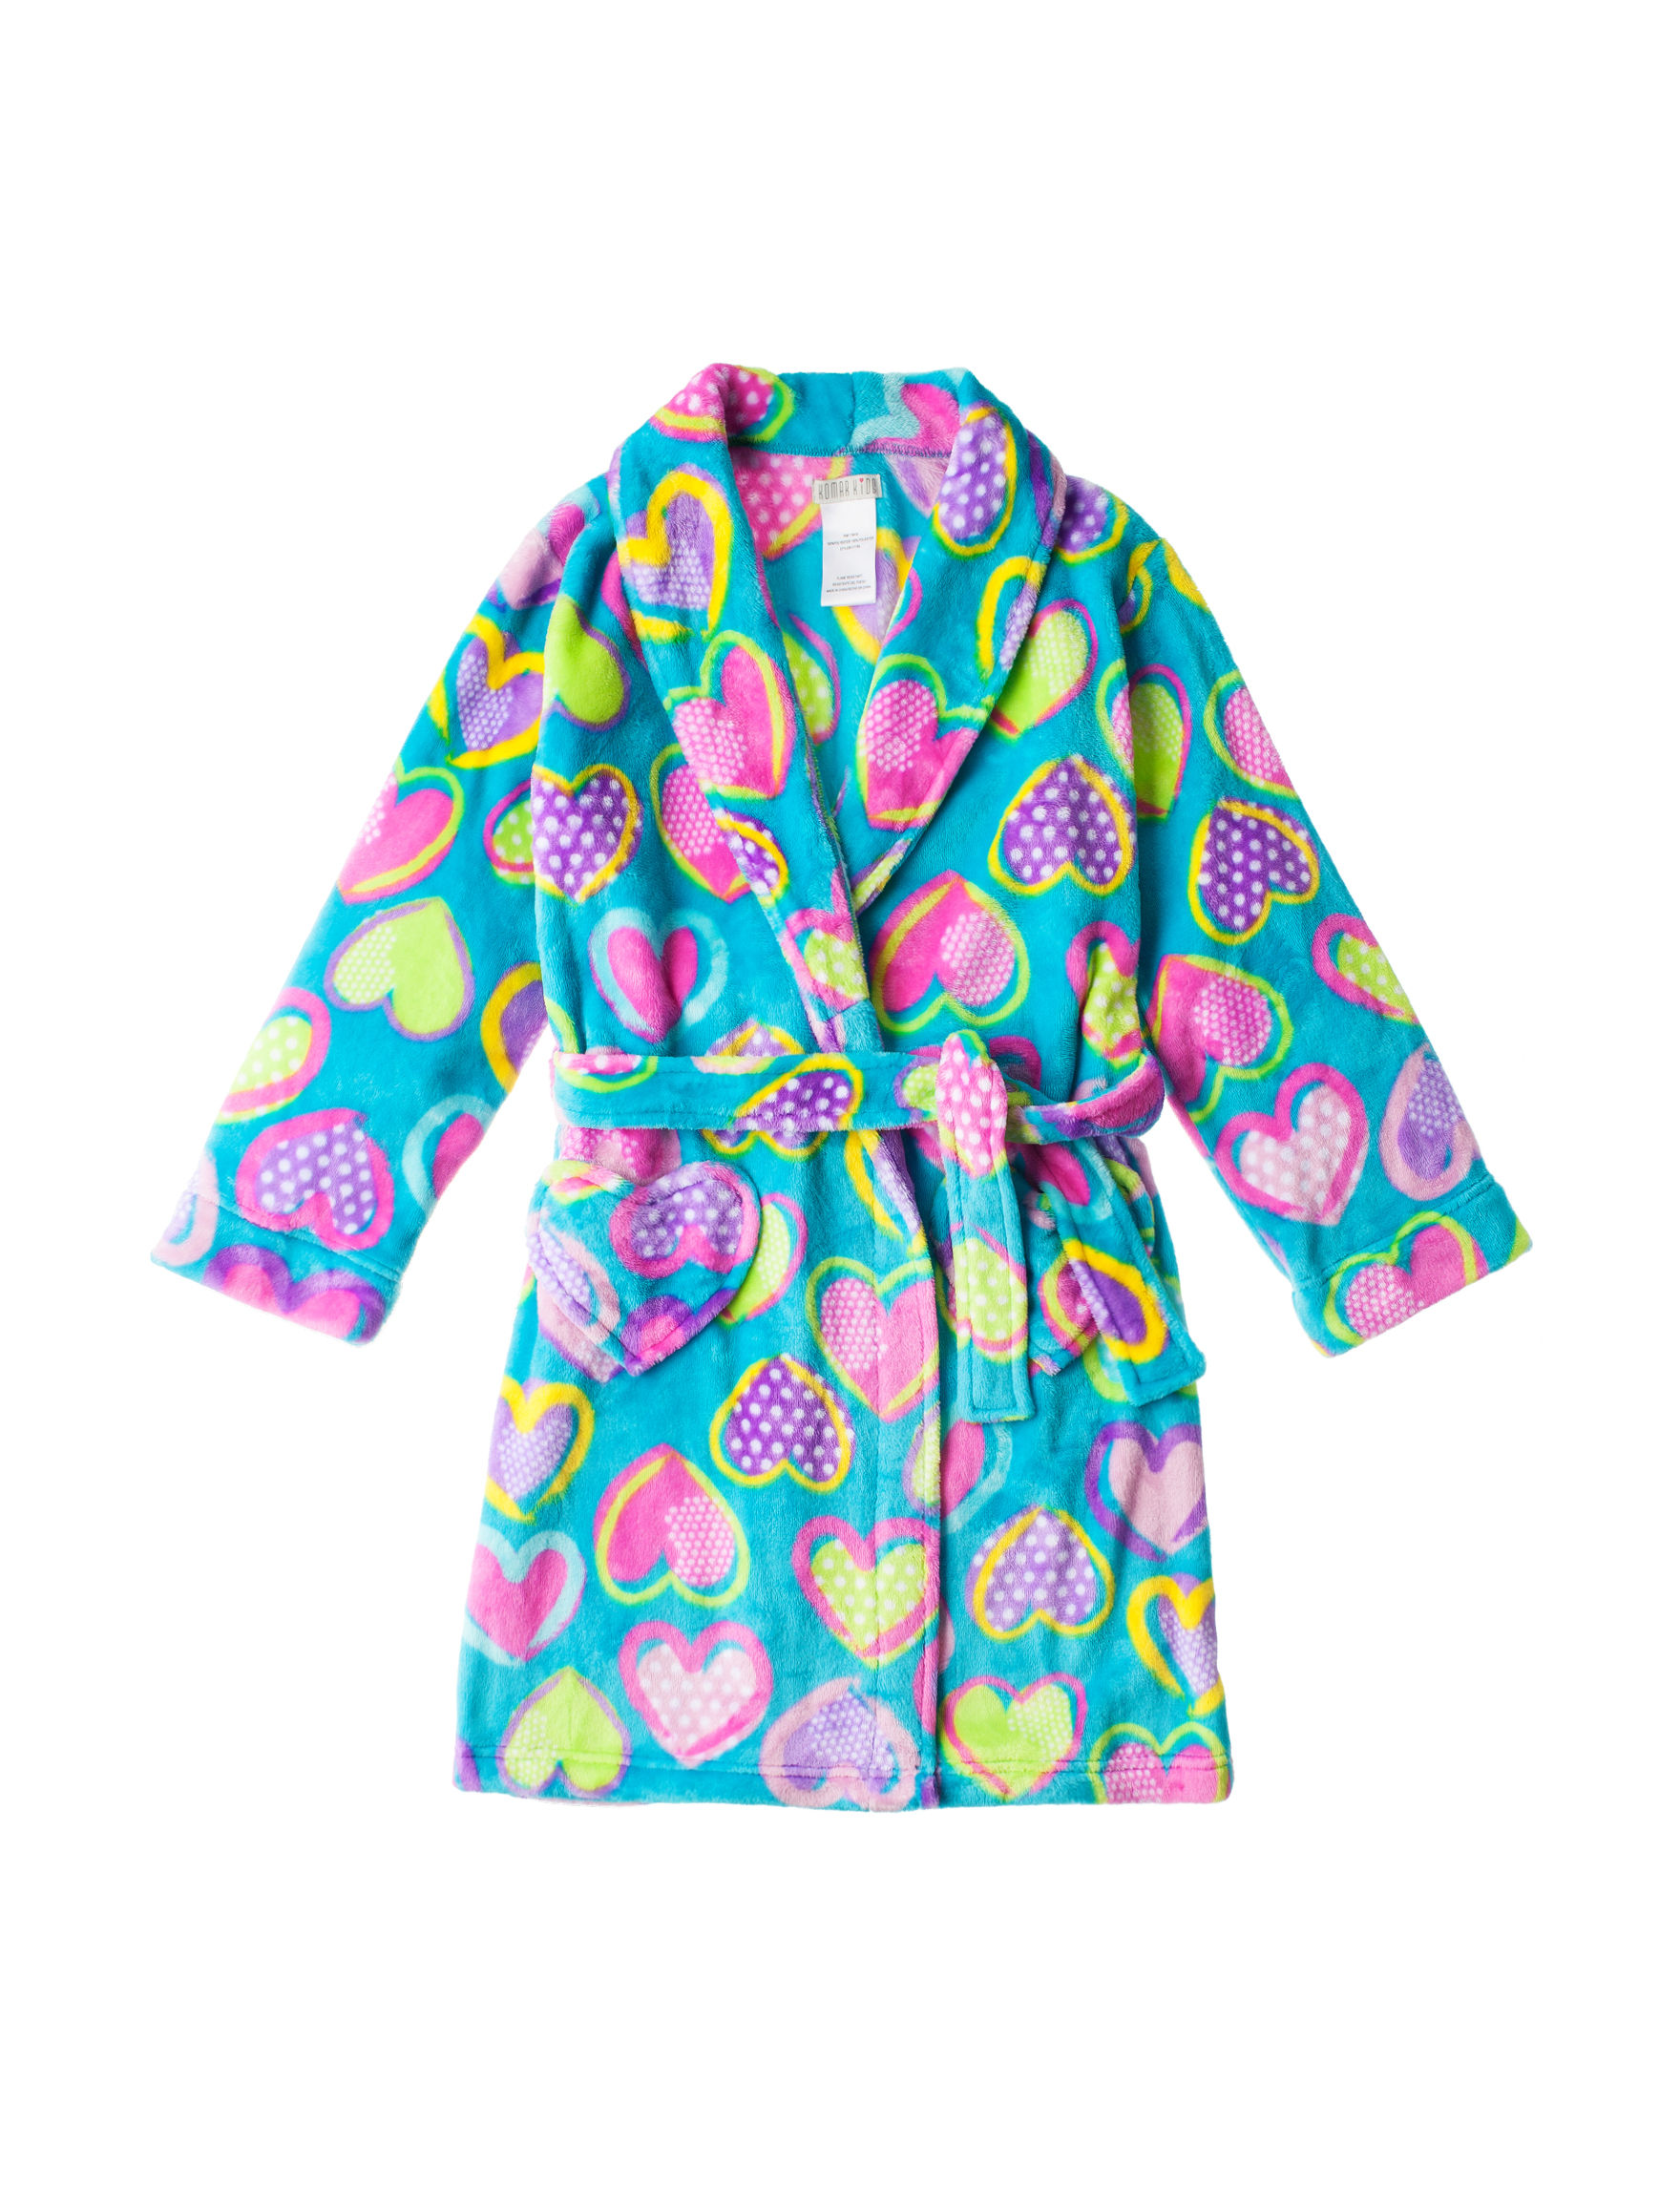 Komar Kids Turquoise Robes, Wraps & Dusters